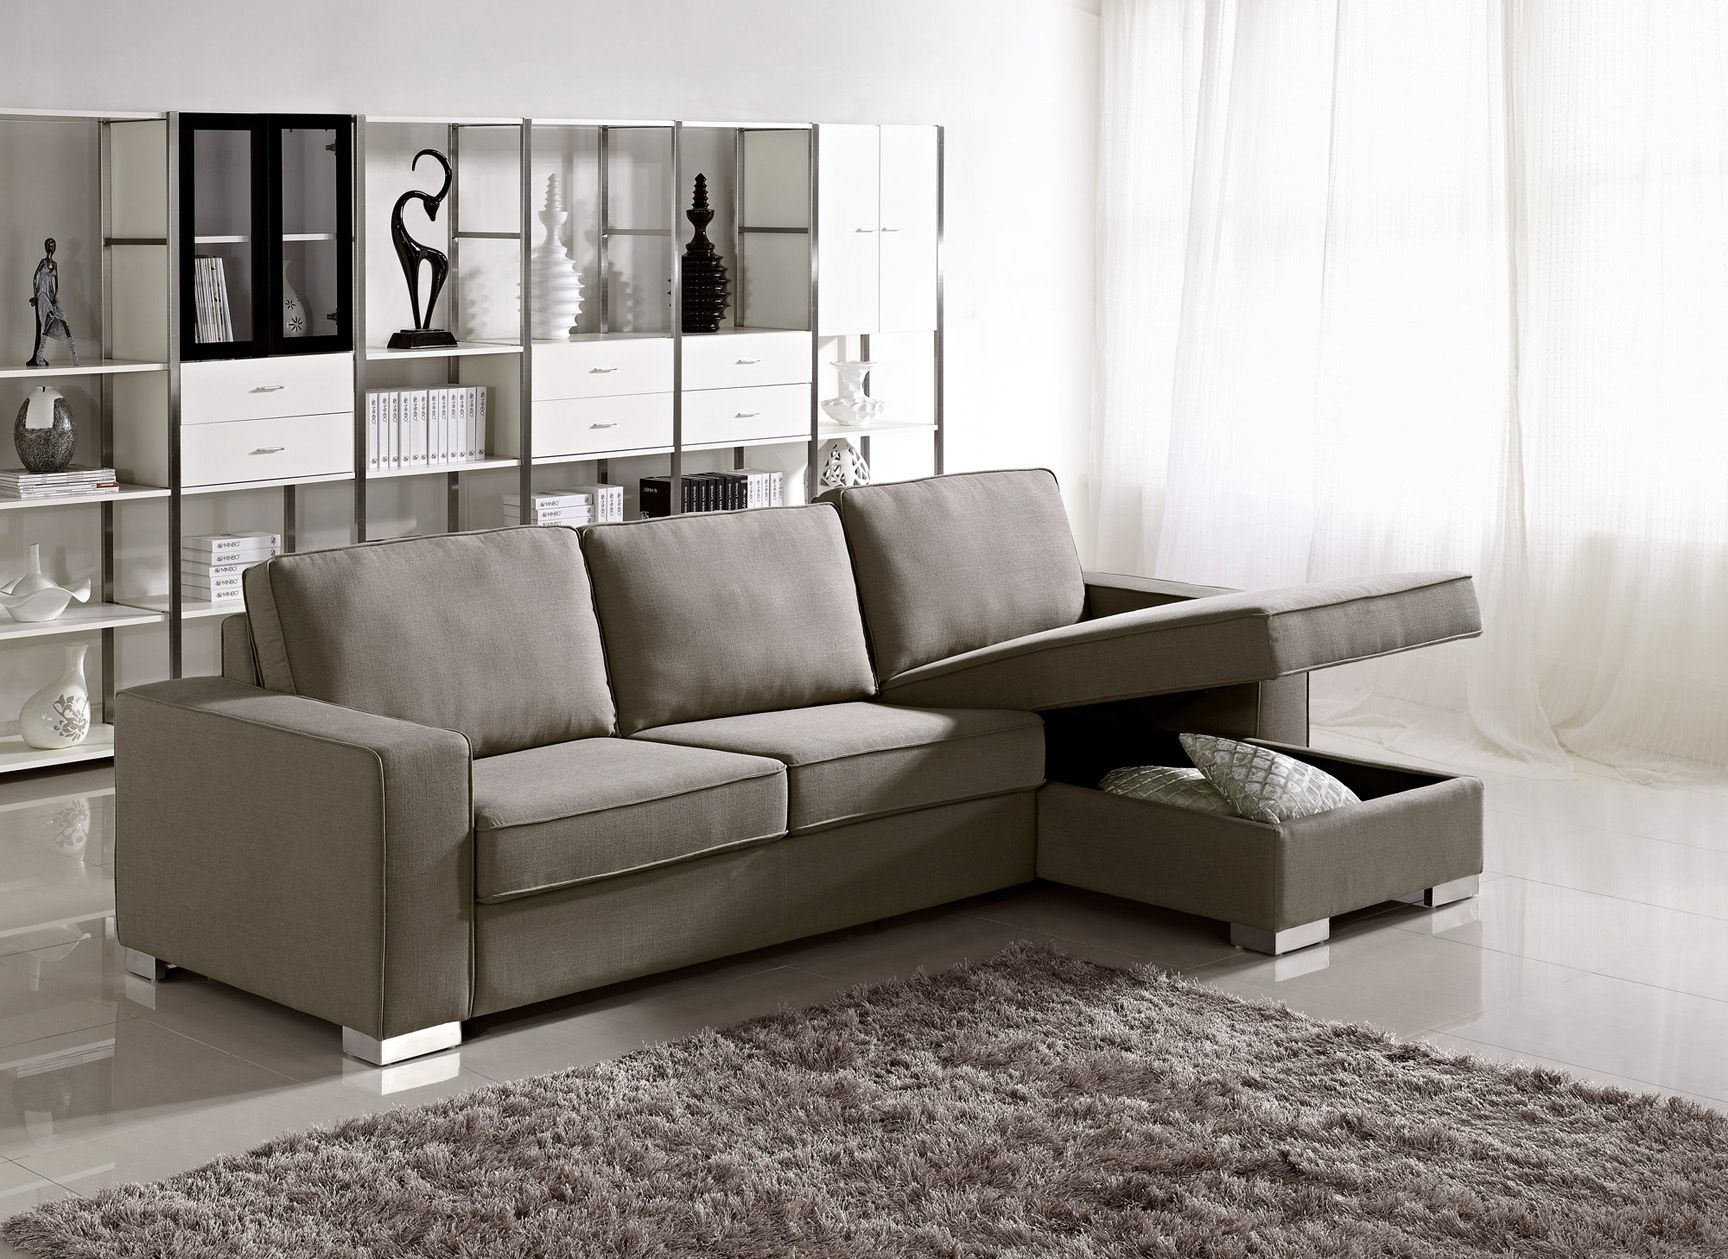 good quality sectional sofas microfiber futon sofa bed with storage 12 ideas of abbyson living charlotte dark brown